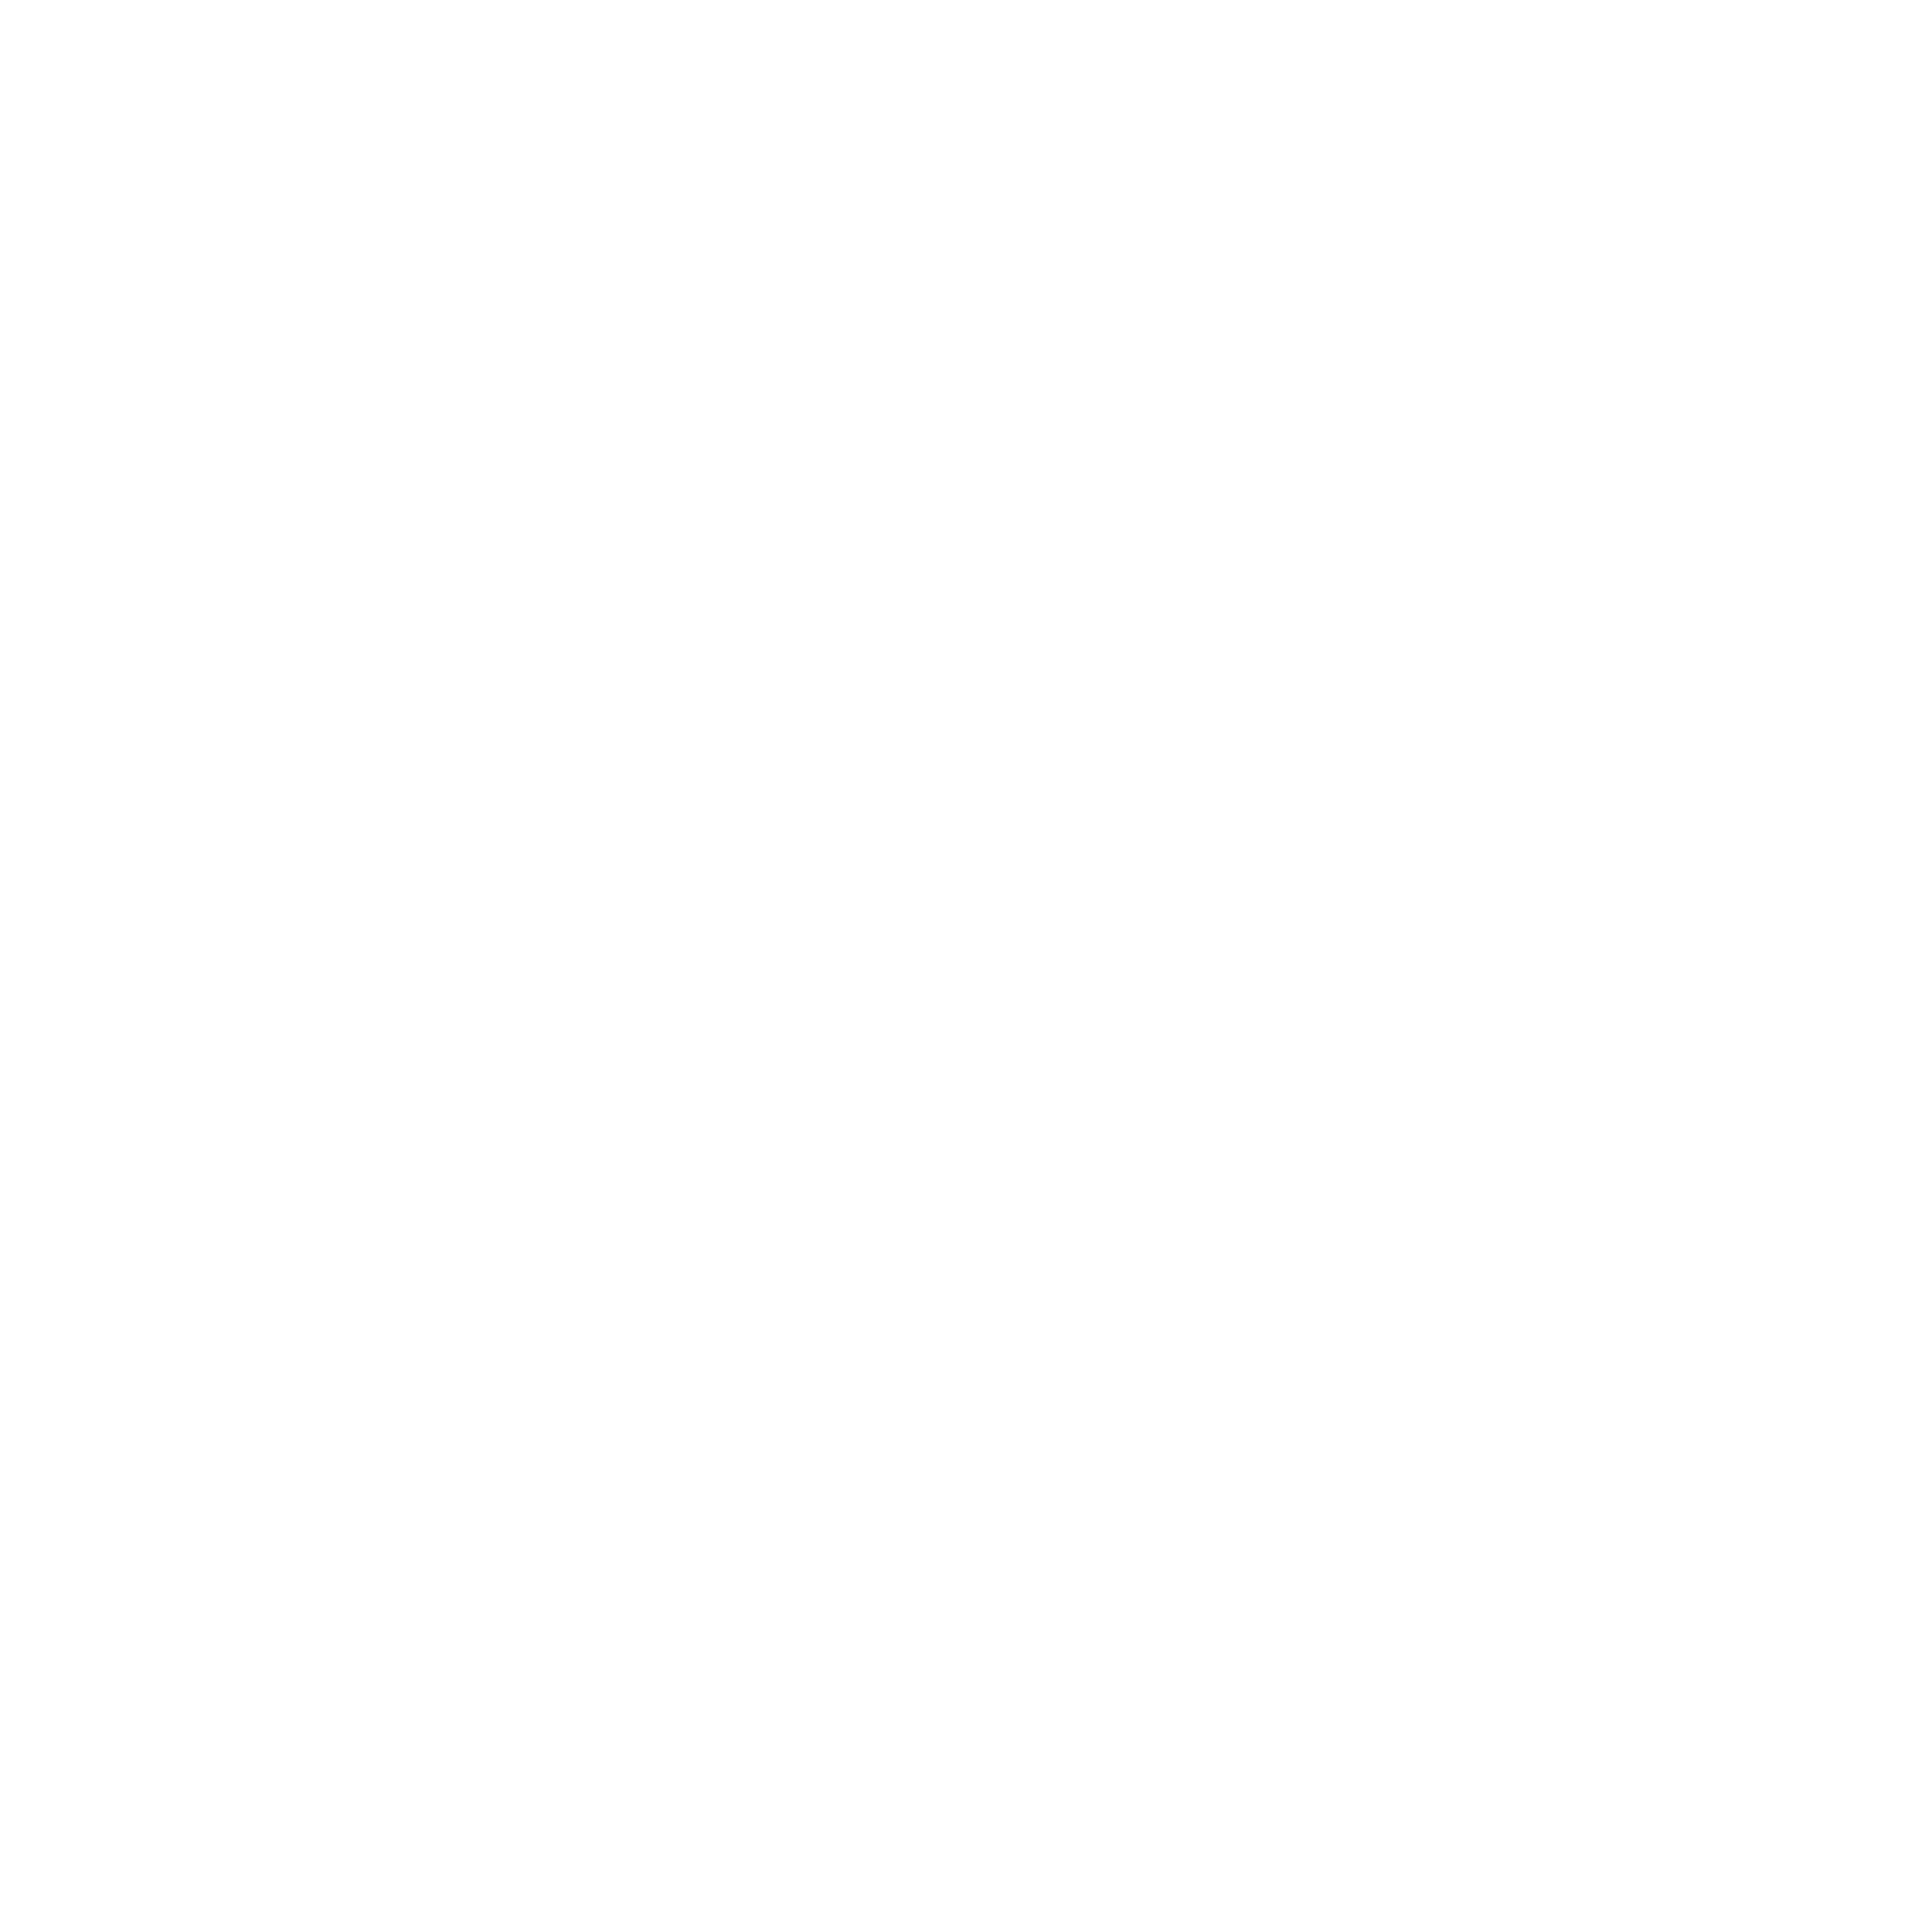 equine surfacing ltd logo